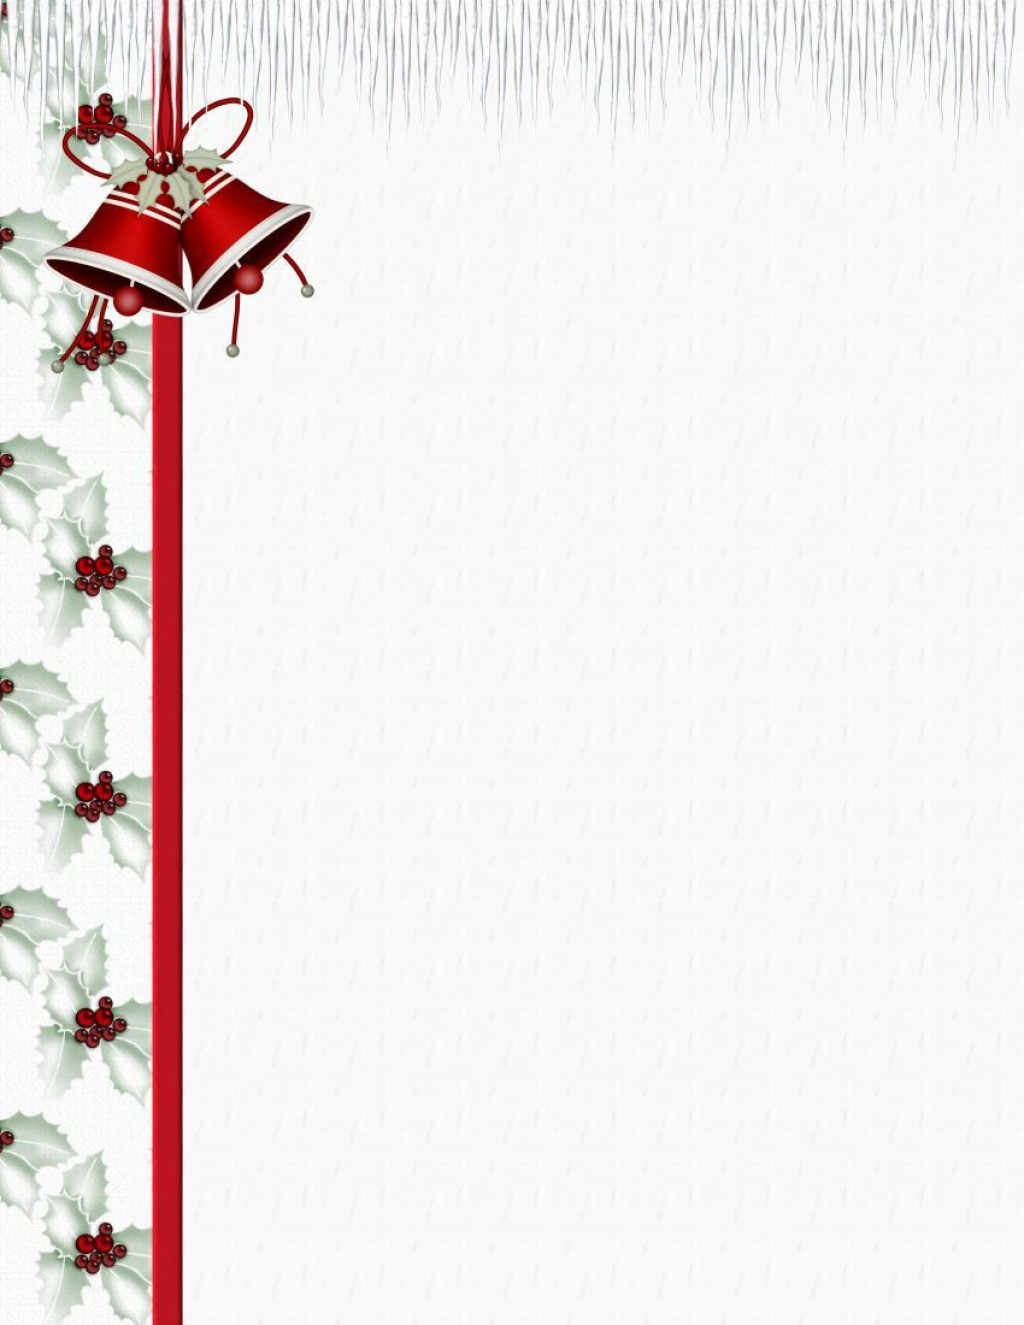 000 Beautiful Christma Stationery Template Word Free Picture  Religiou For DownloadableLarge